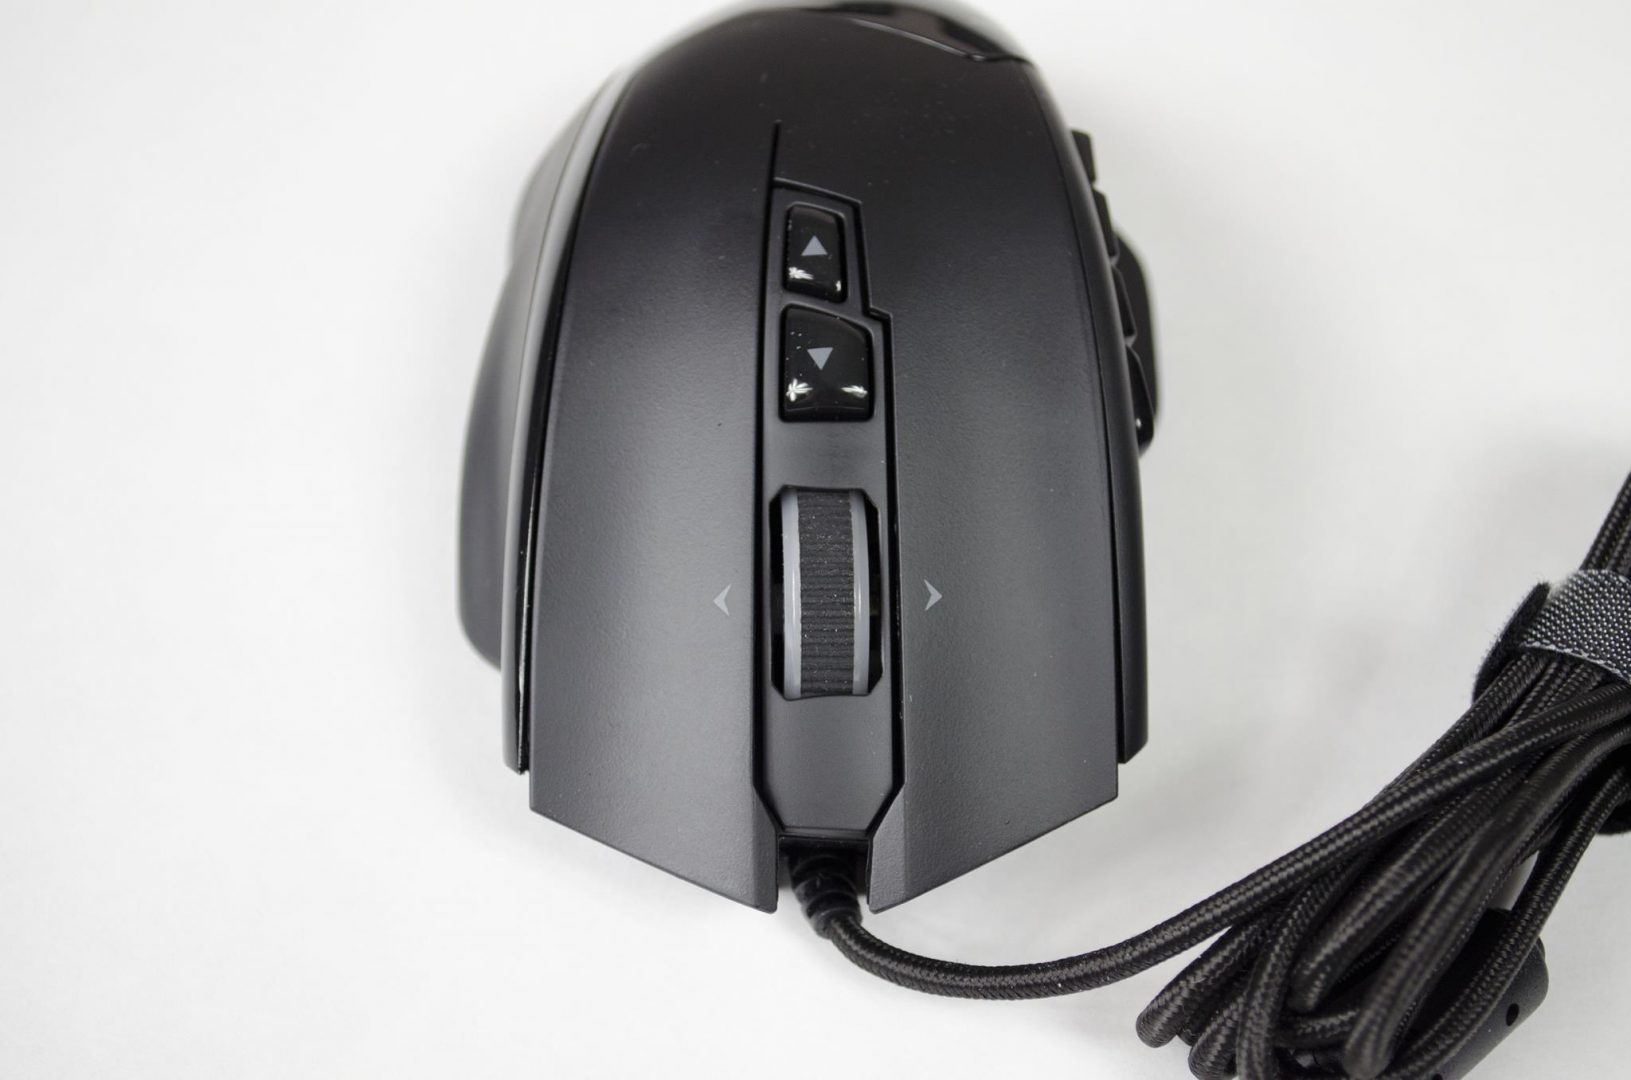 havit-hv-ms735-mouse-review_7